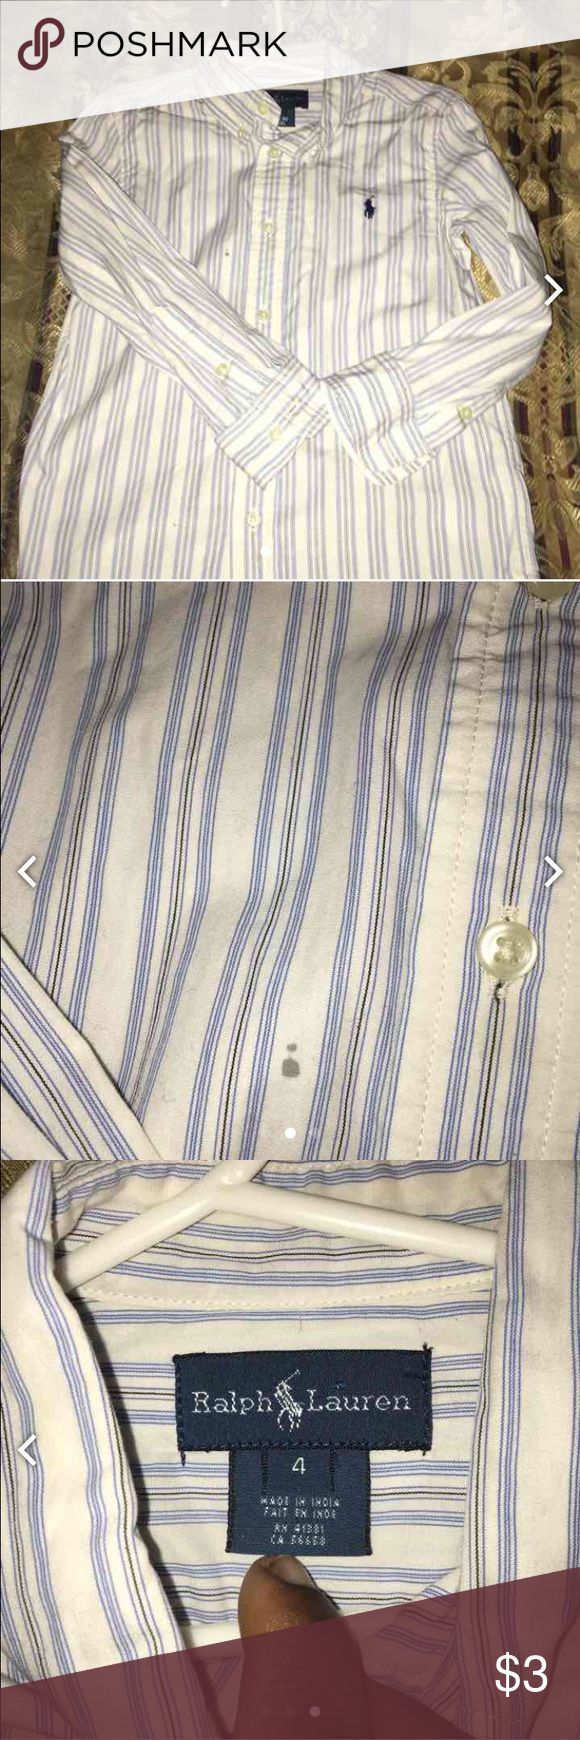 Ralph Lauren Stripe long sleeve button down small spot on front this item will be sold cheap Ralph Lauren Shirts & Tops Button Down Shirts